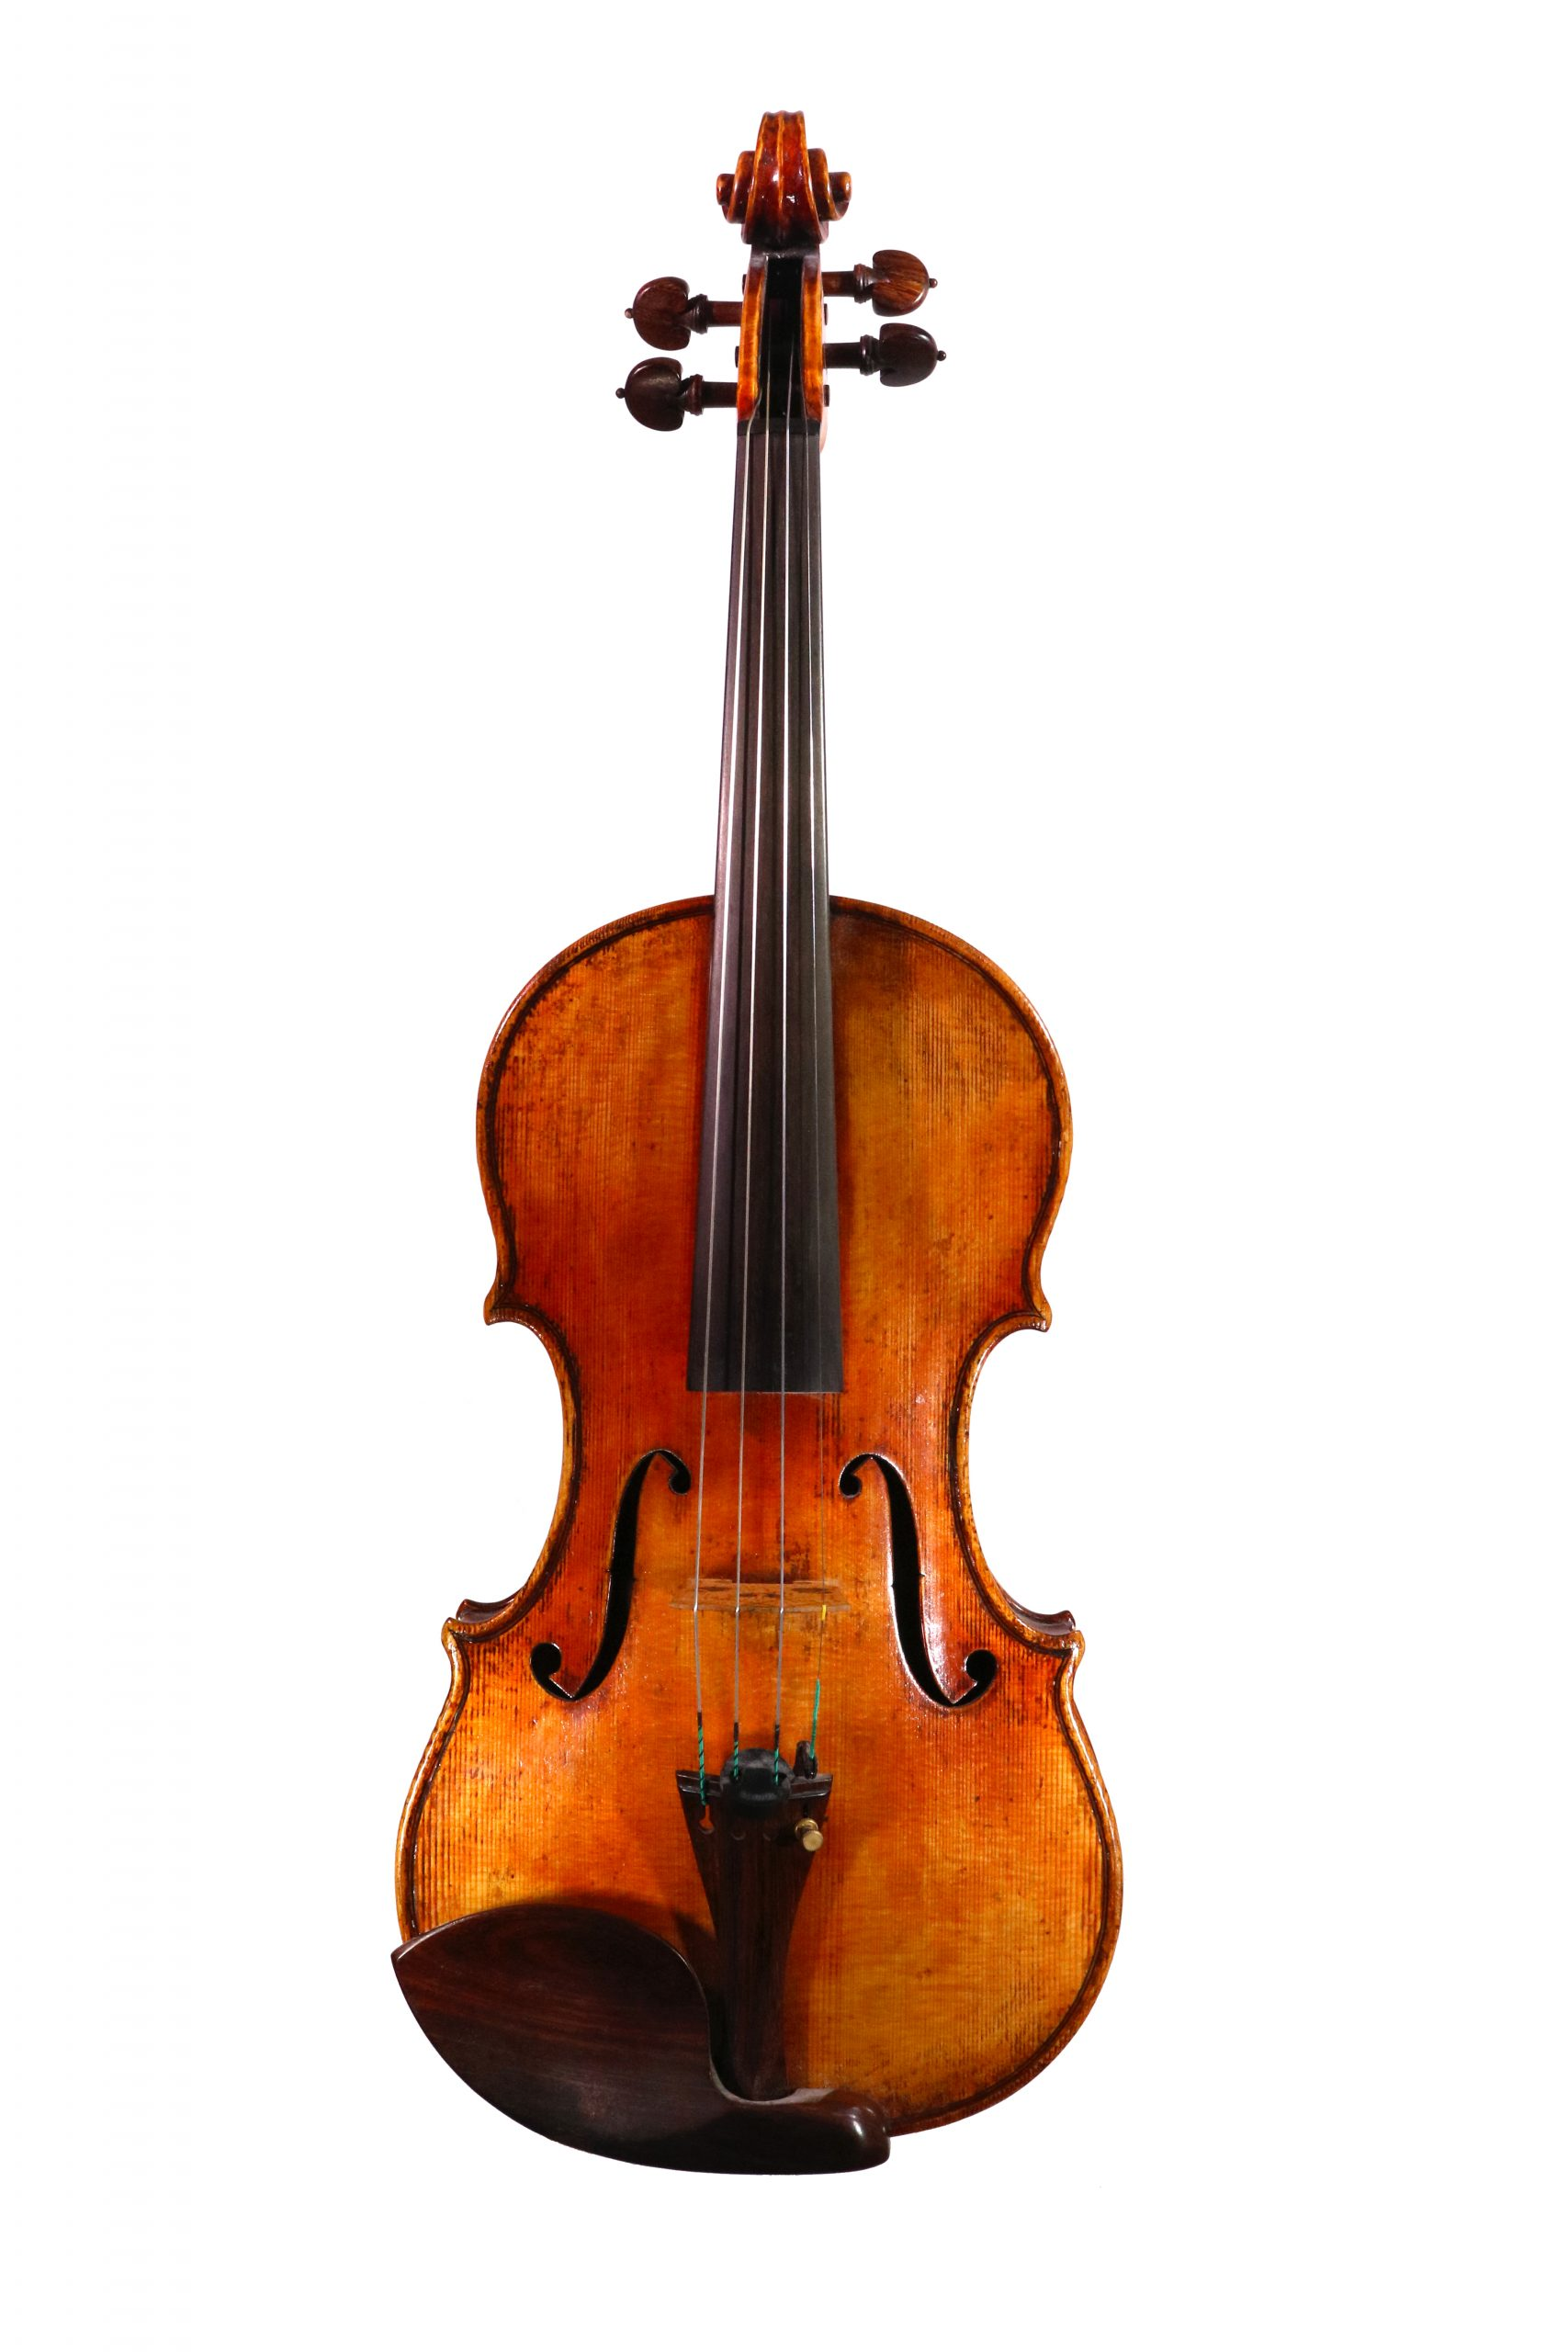 Fine violin by Paul Harrild available for sale at Bridgewood and Neitzert London